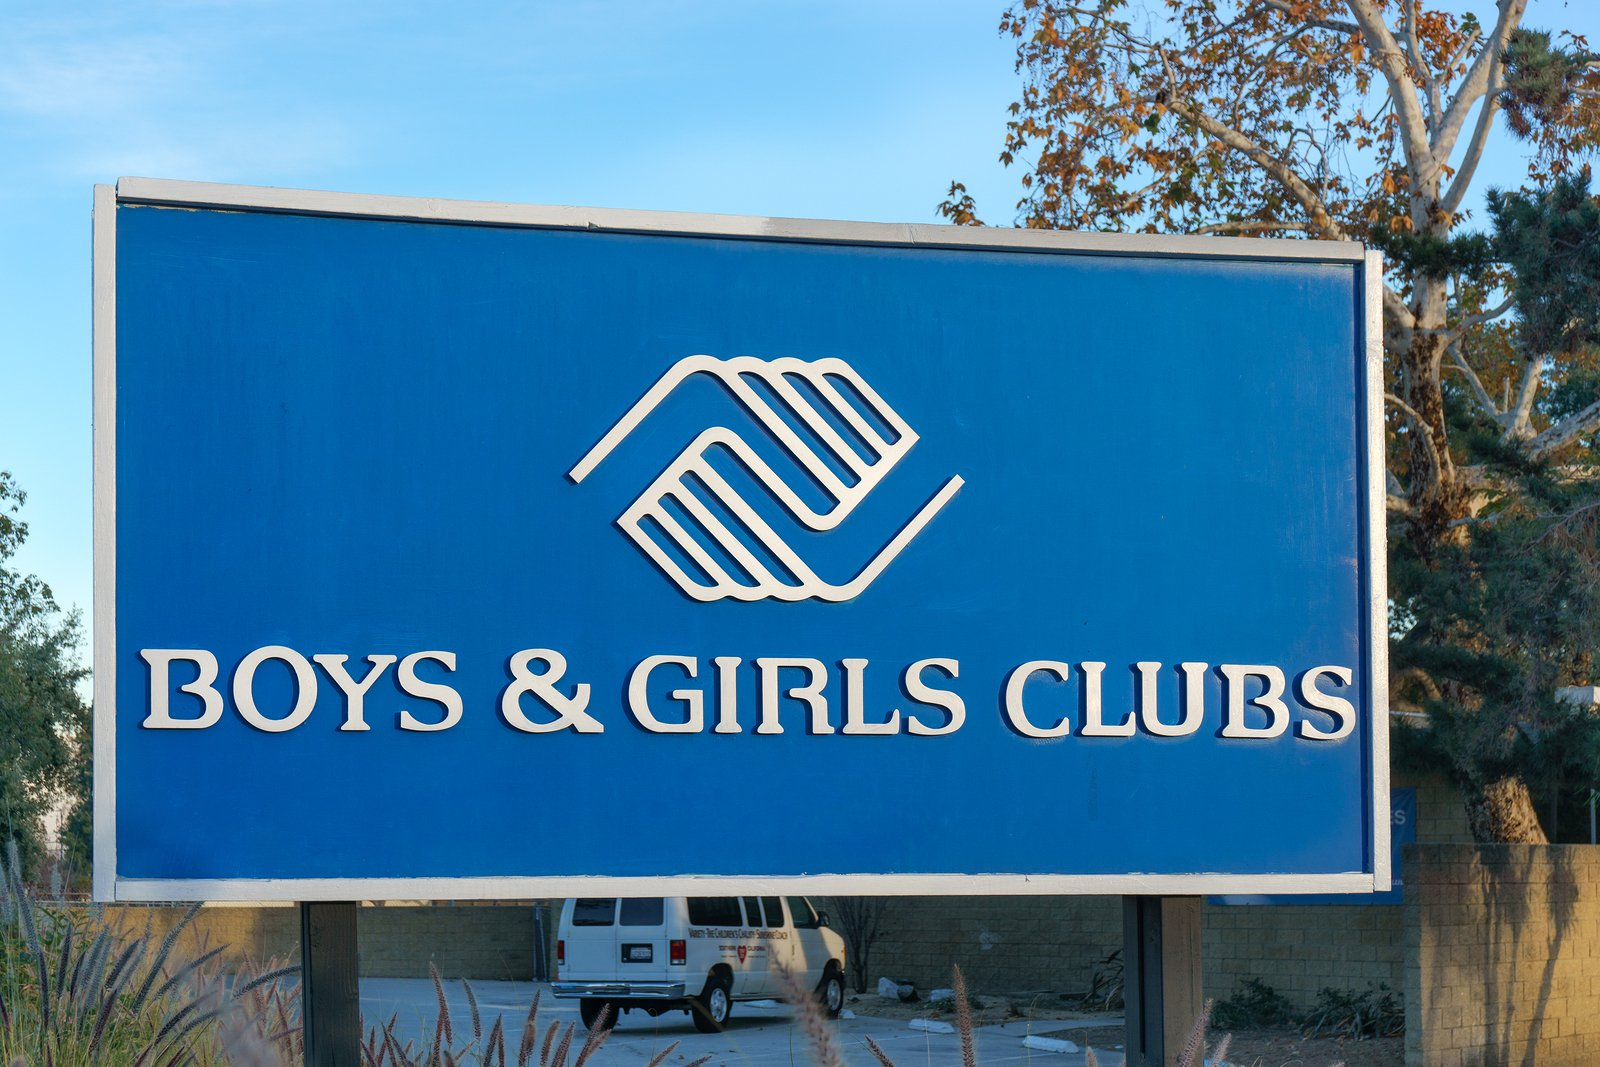 Fundraising, grants essential to Boys & Girls Club